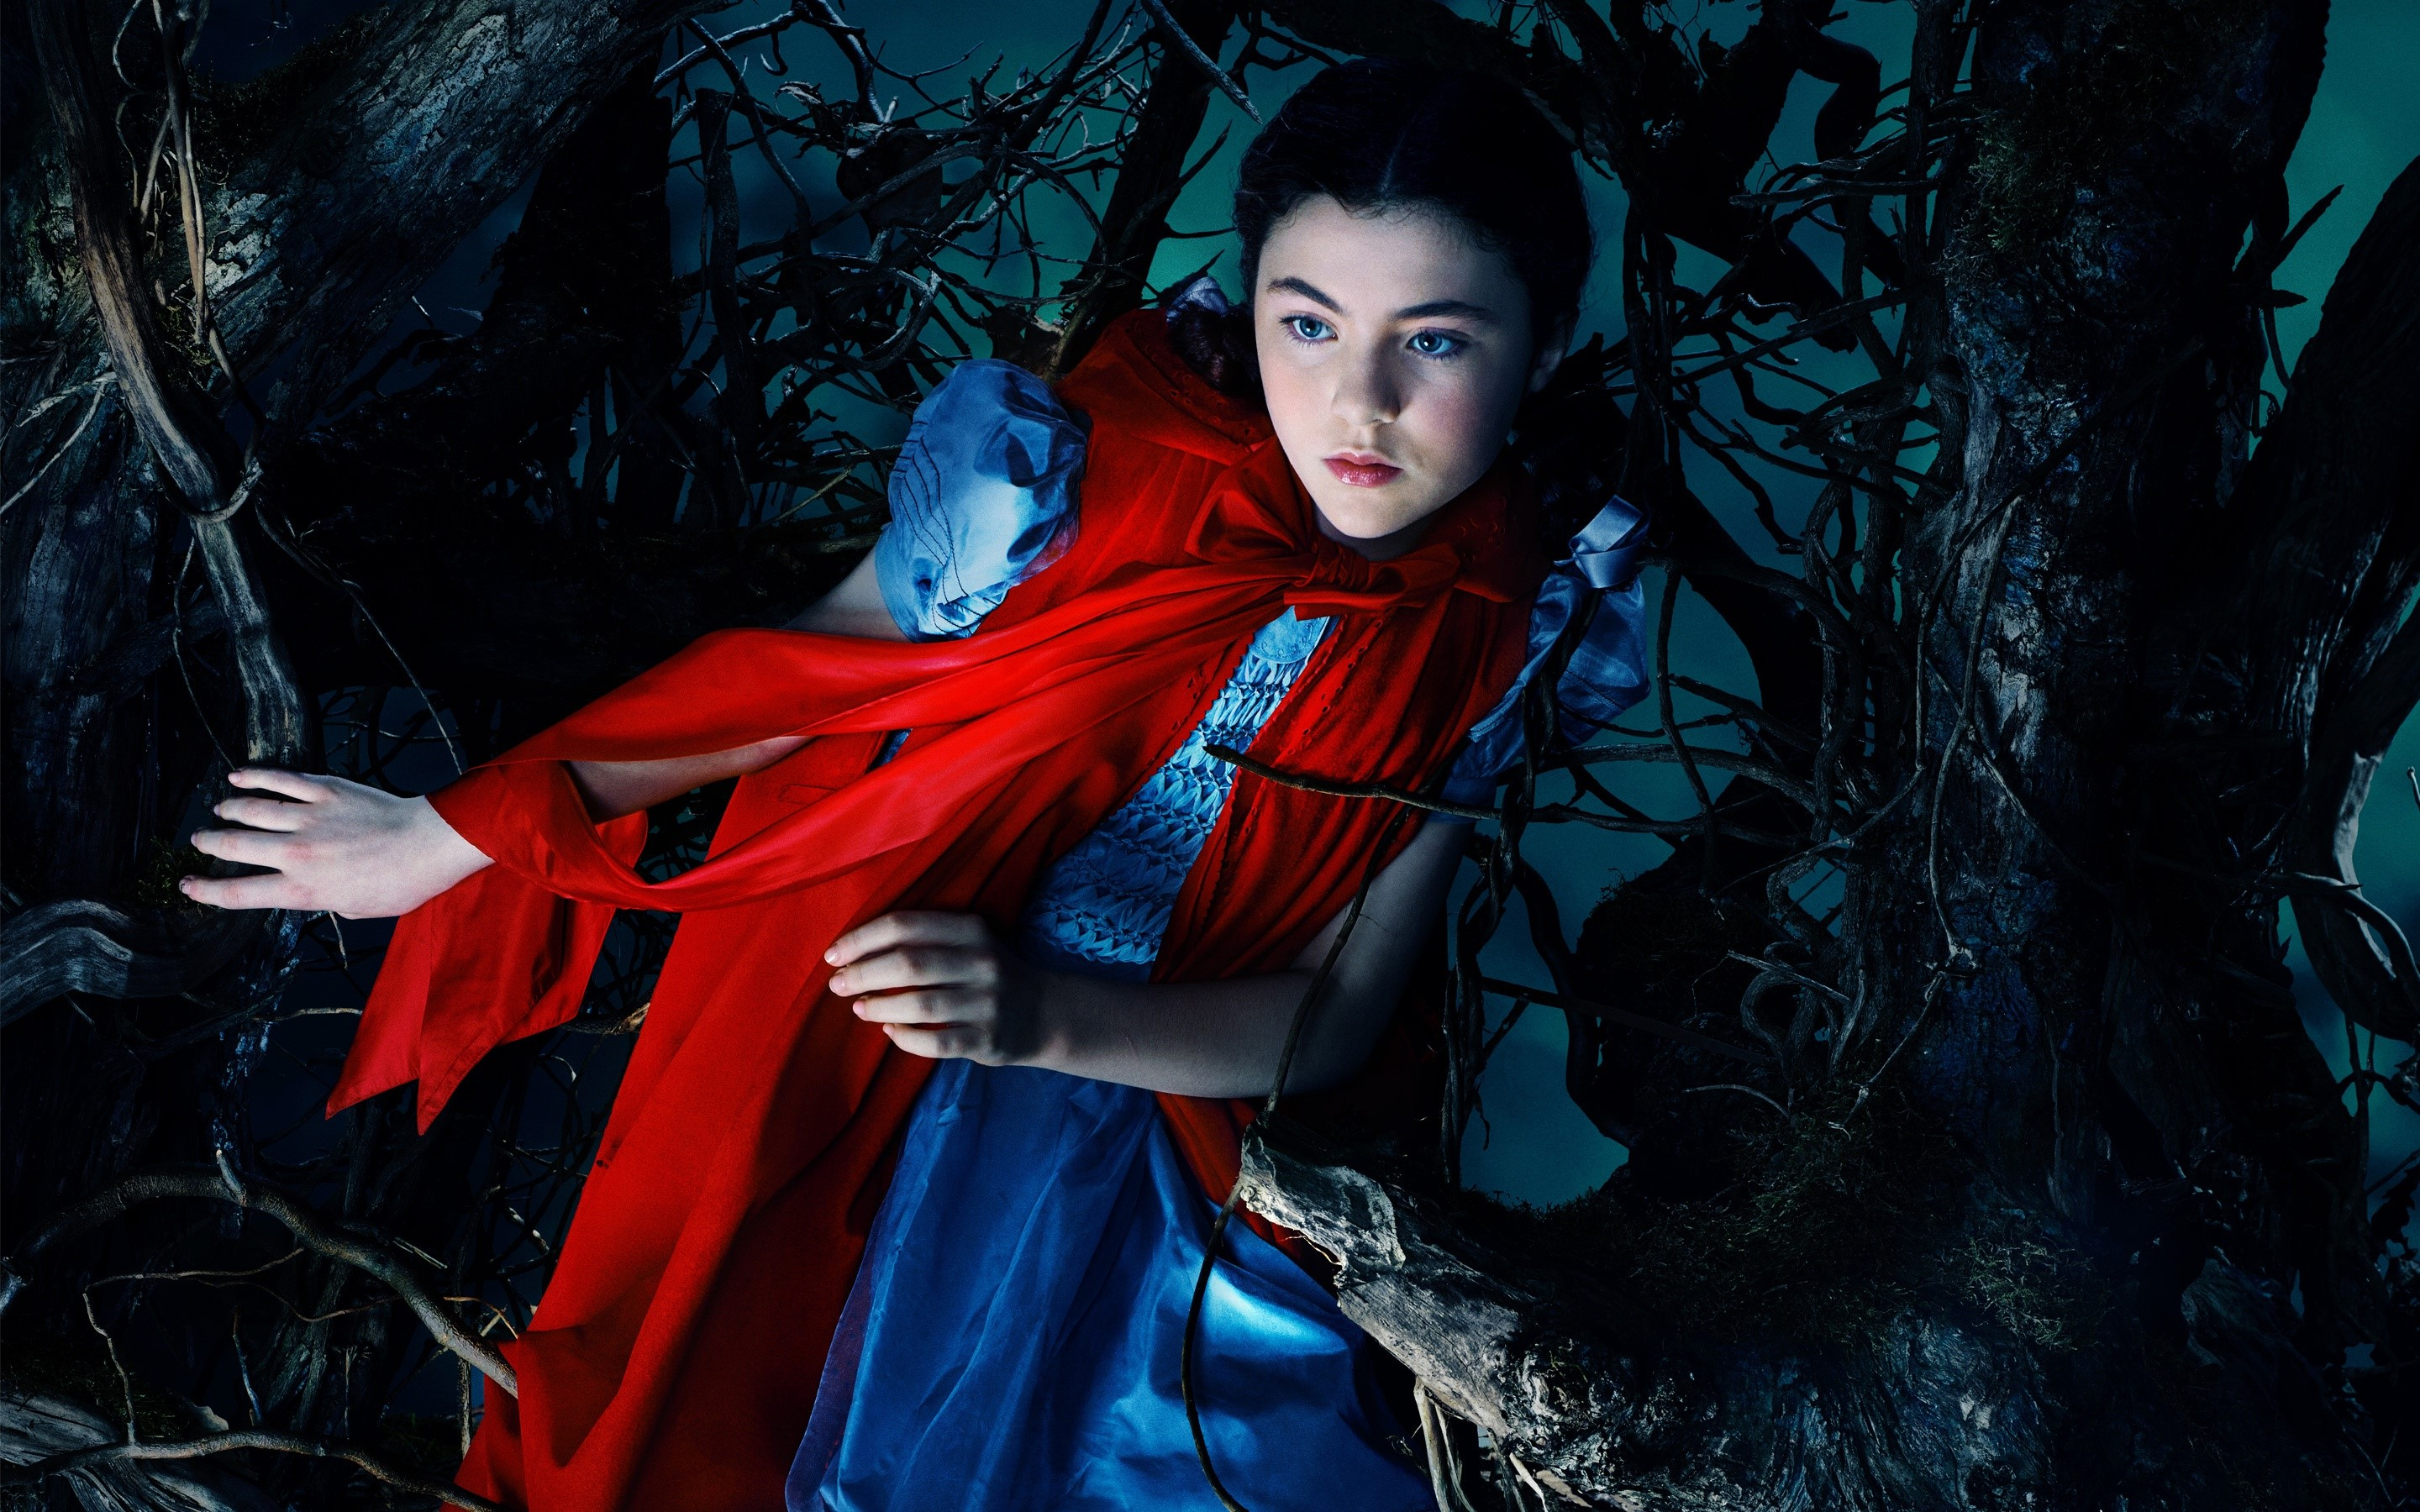 Wallpaper Little red riding hood in Into the woods